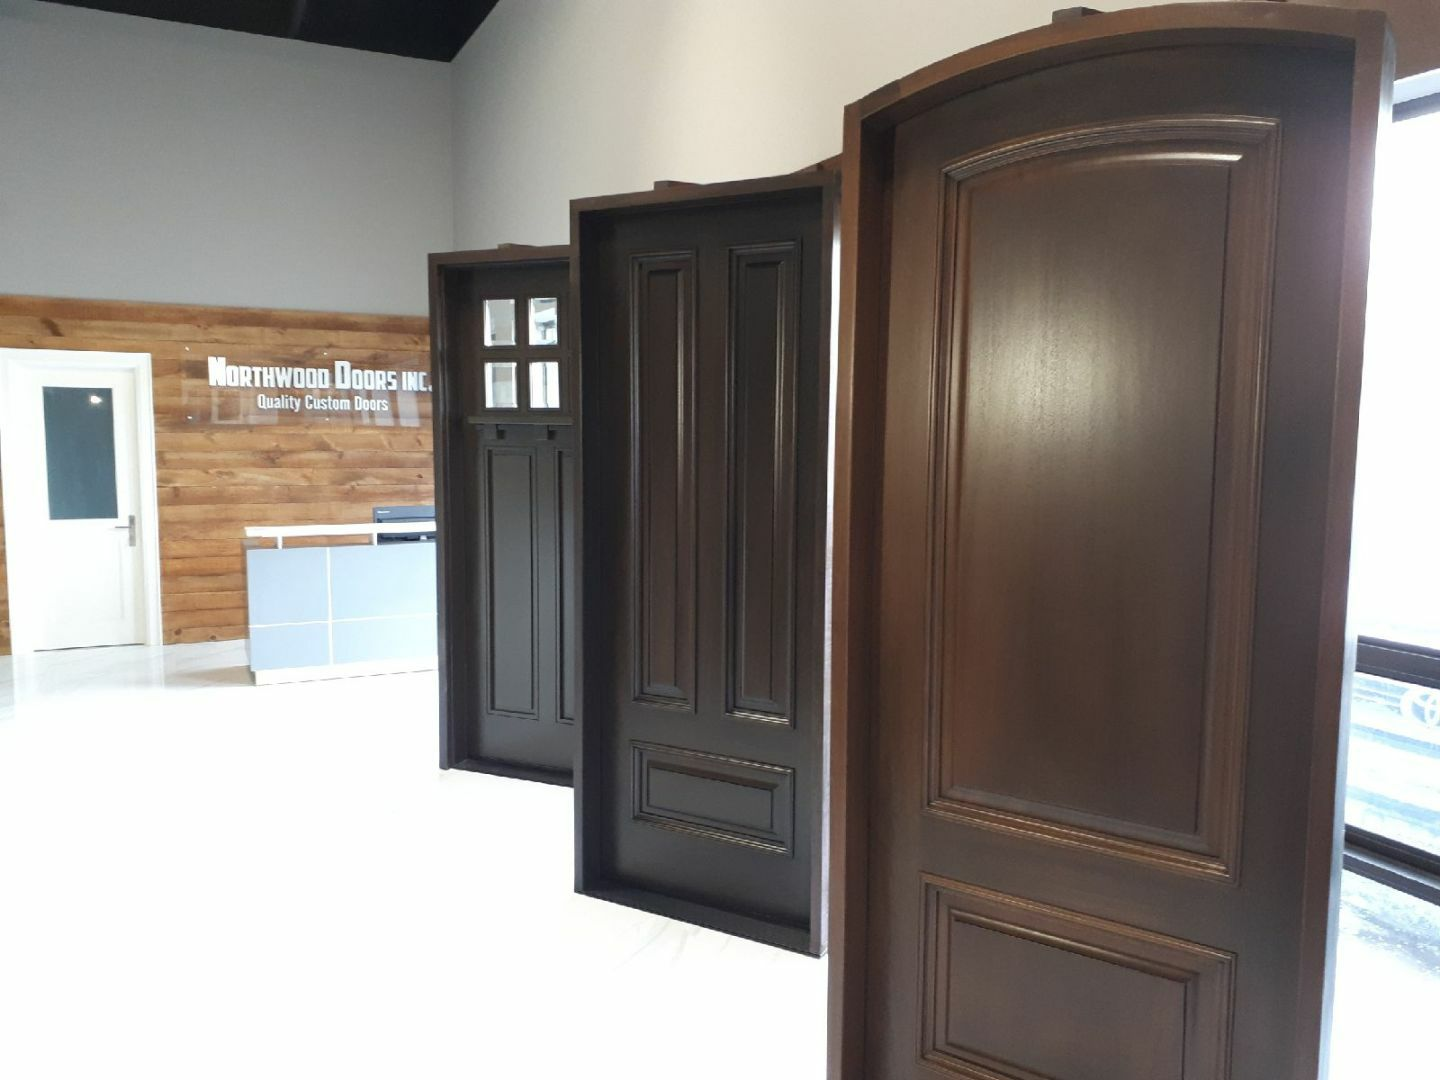 Visit our showroom to envision how one of our many doors on display might look like at your home. www.northwooddoors.com